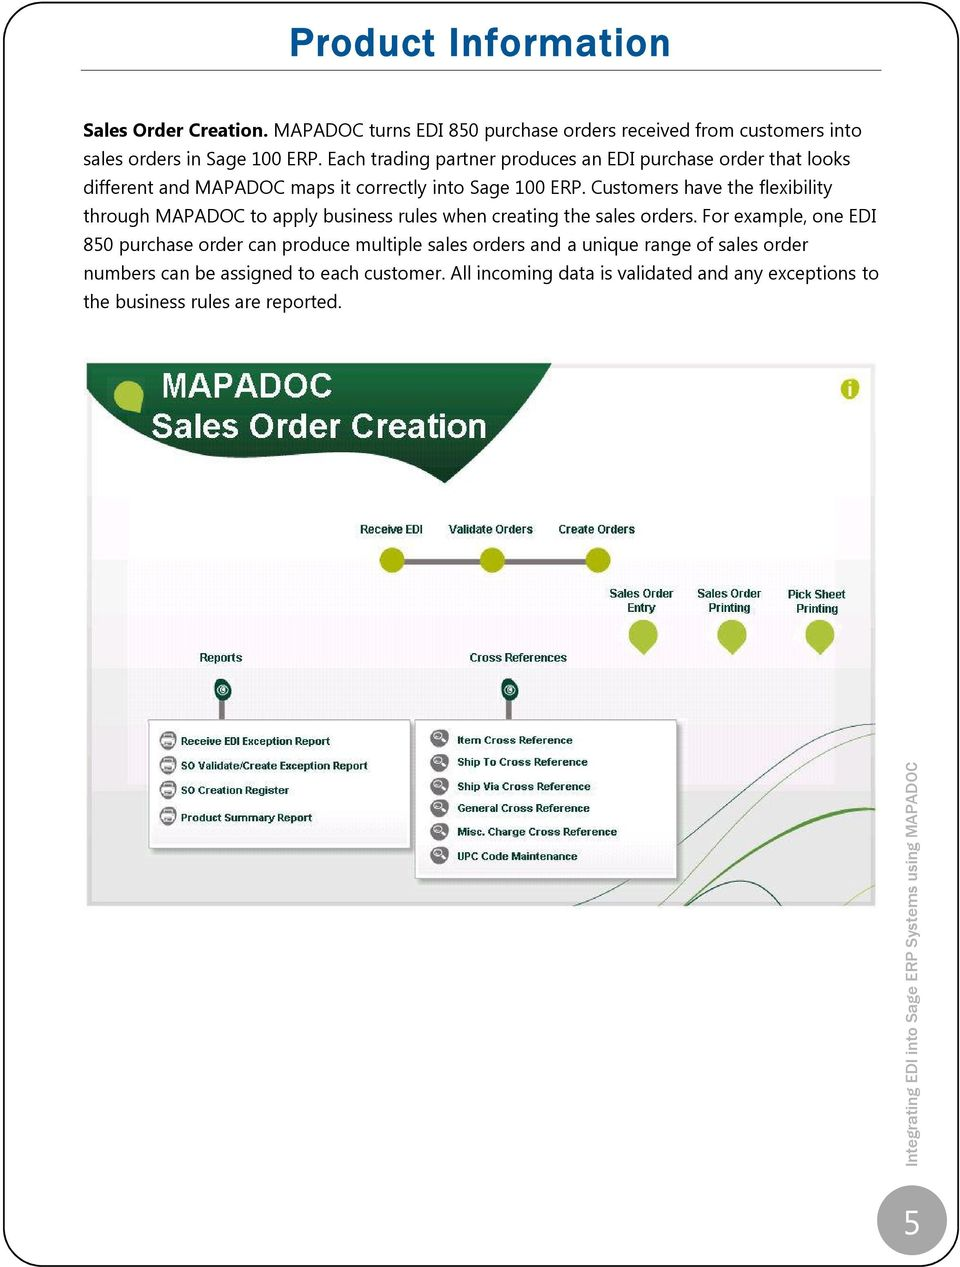 Customers have the flexibility through MAPADOC to apply business rules when creating the sales orders.